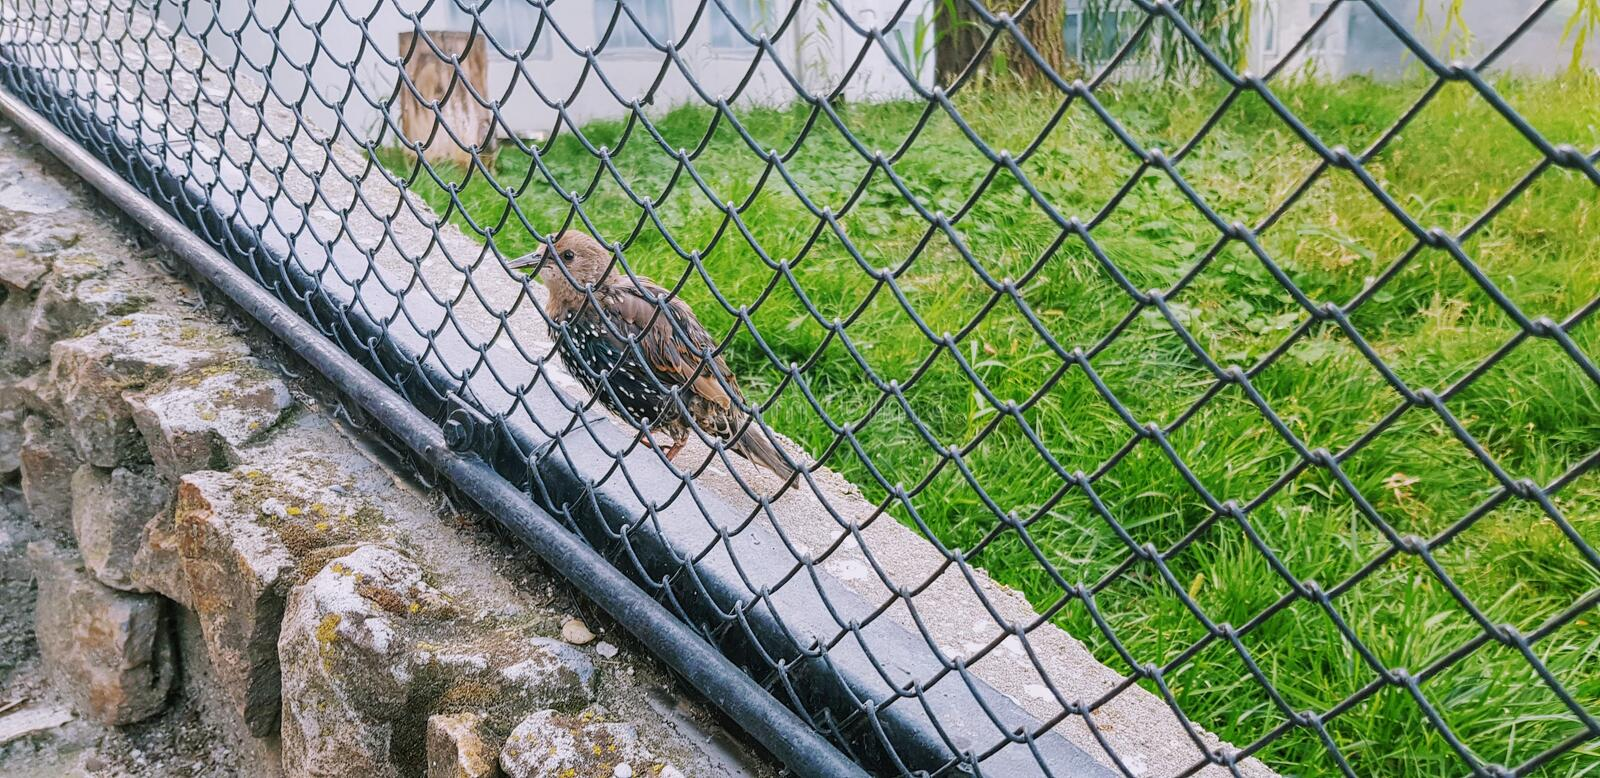 Common starling, also known as European starling bird. Background, fence, grass, green, grid, iron, metal, nature, net, outdoor, steel, wall, wire stock images